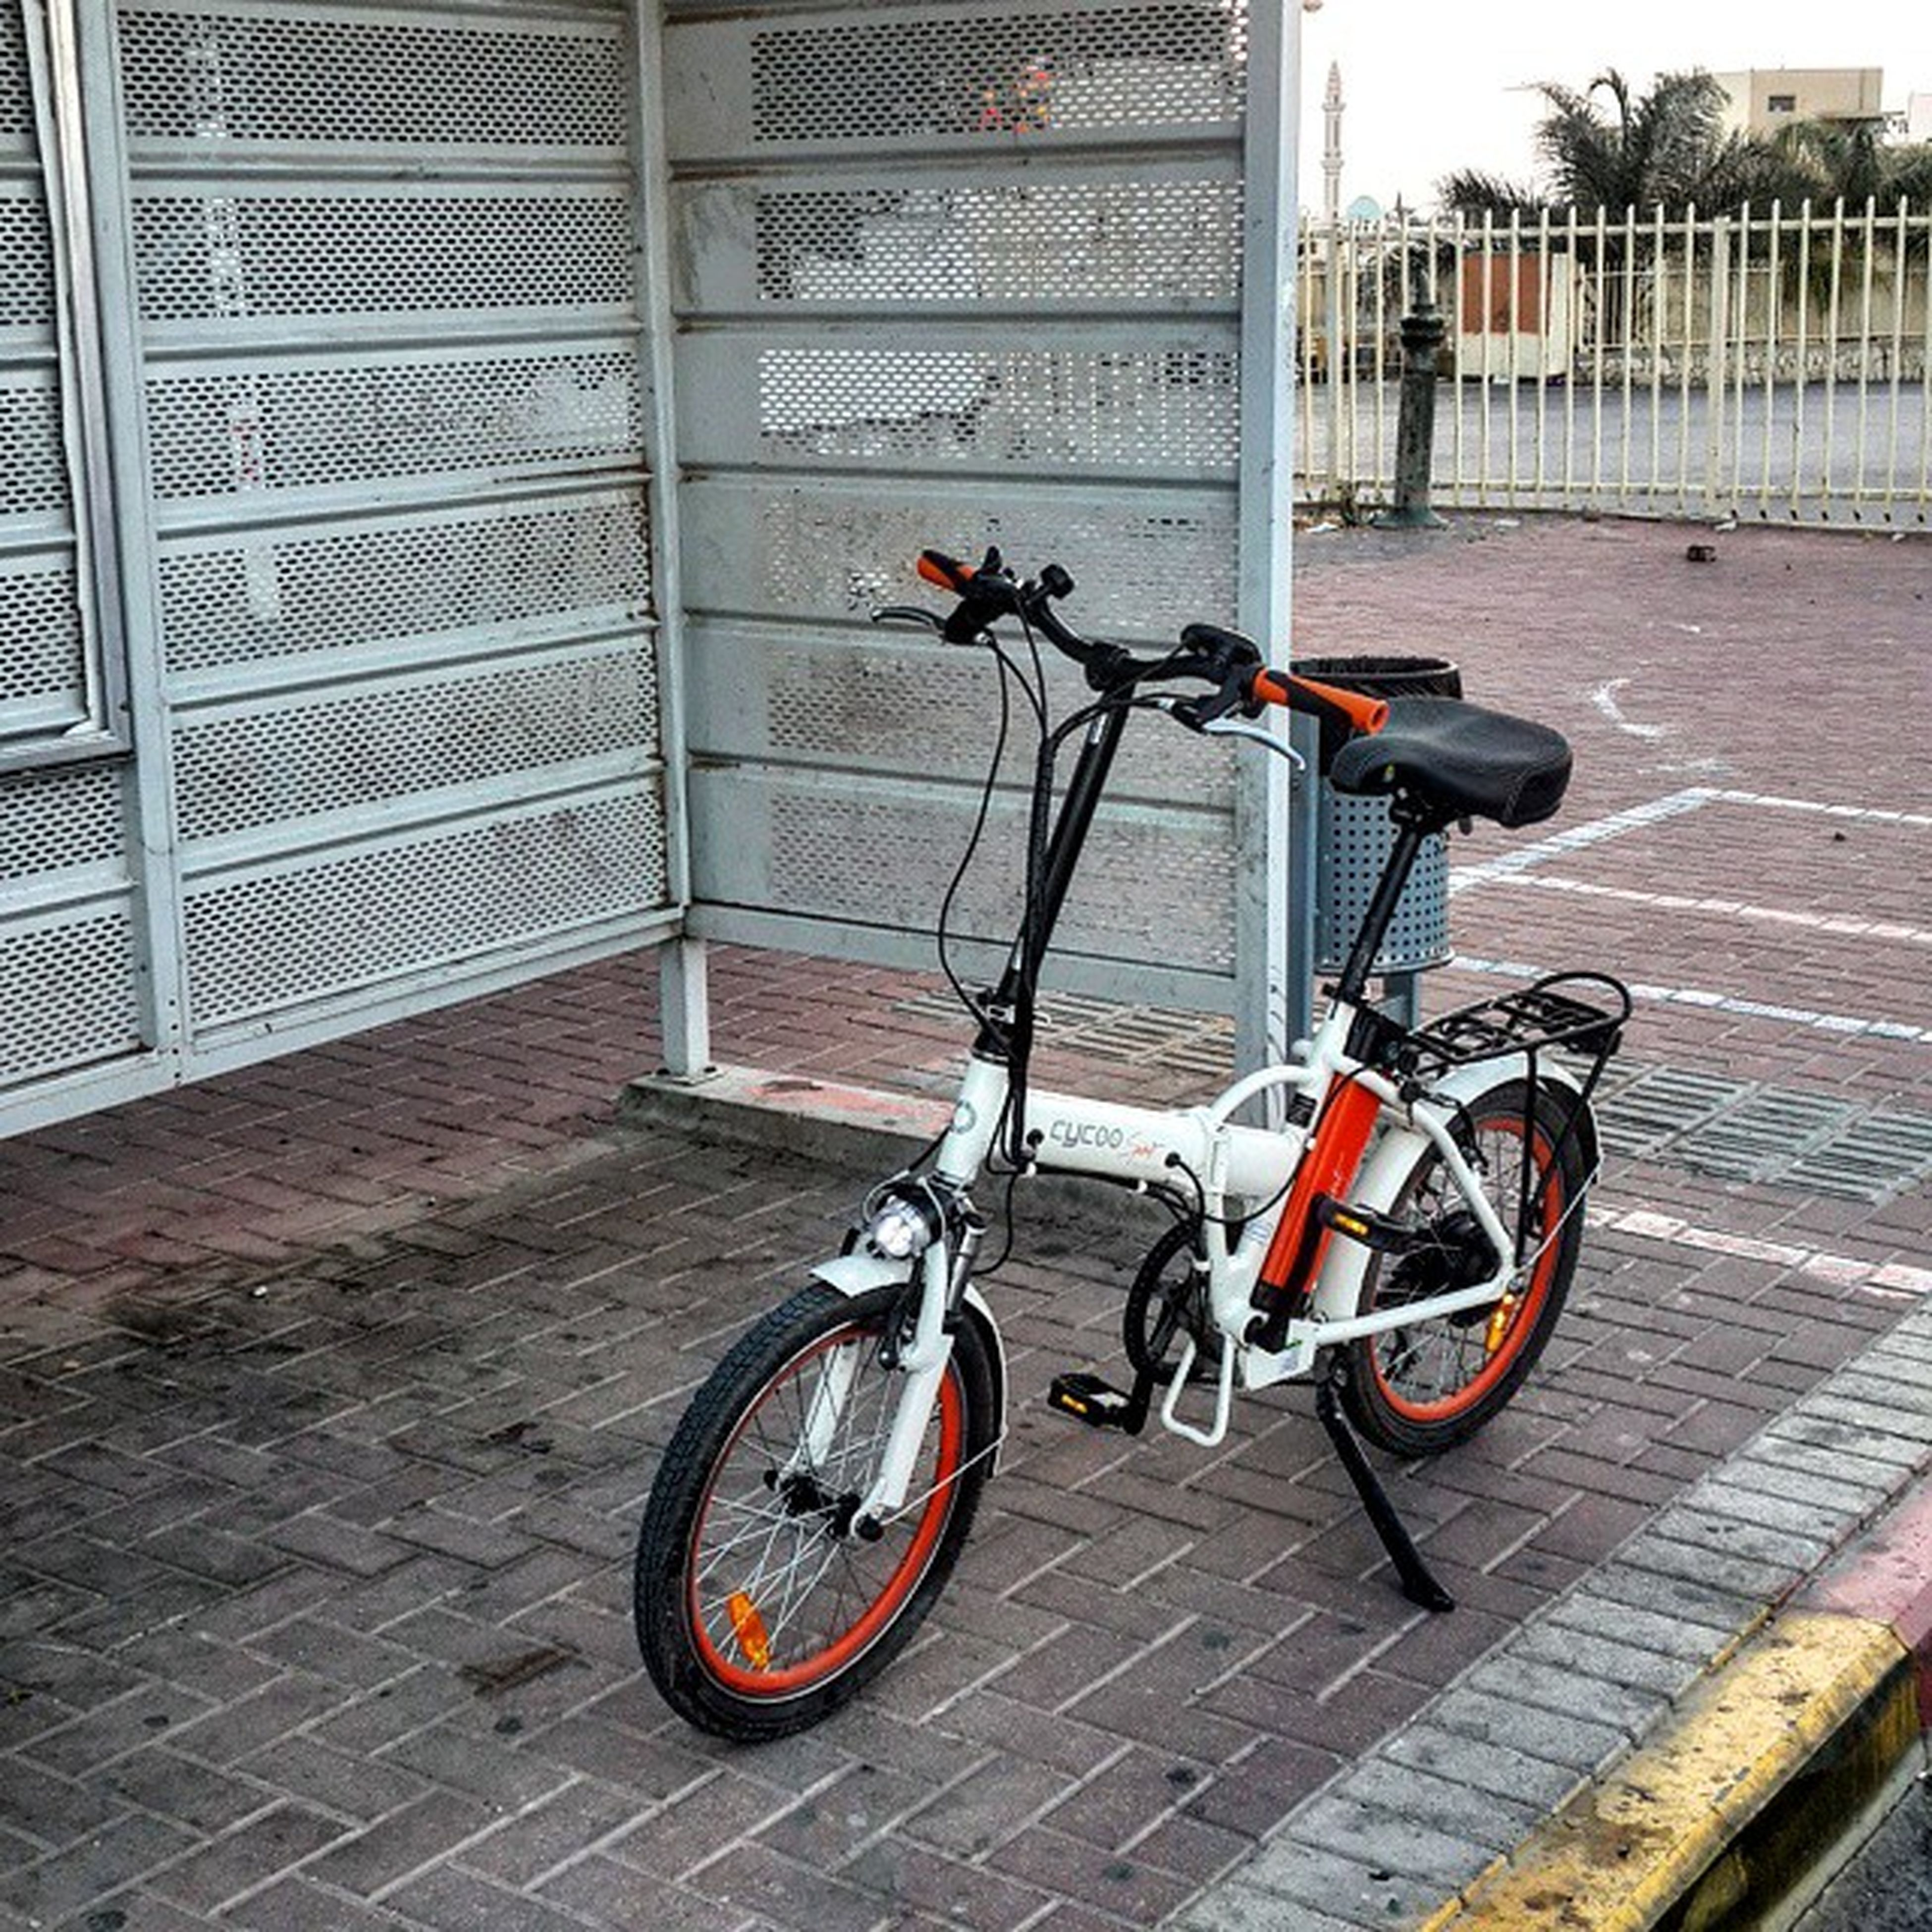 bicycle, transportation, land vehicle, mode of transport, stationary, parking, parked, building exterior, architecture, street, built structure, sidewalk, city, day, cycle, wall - building feature, no people, outdoors, paving stone, cobblestone